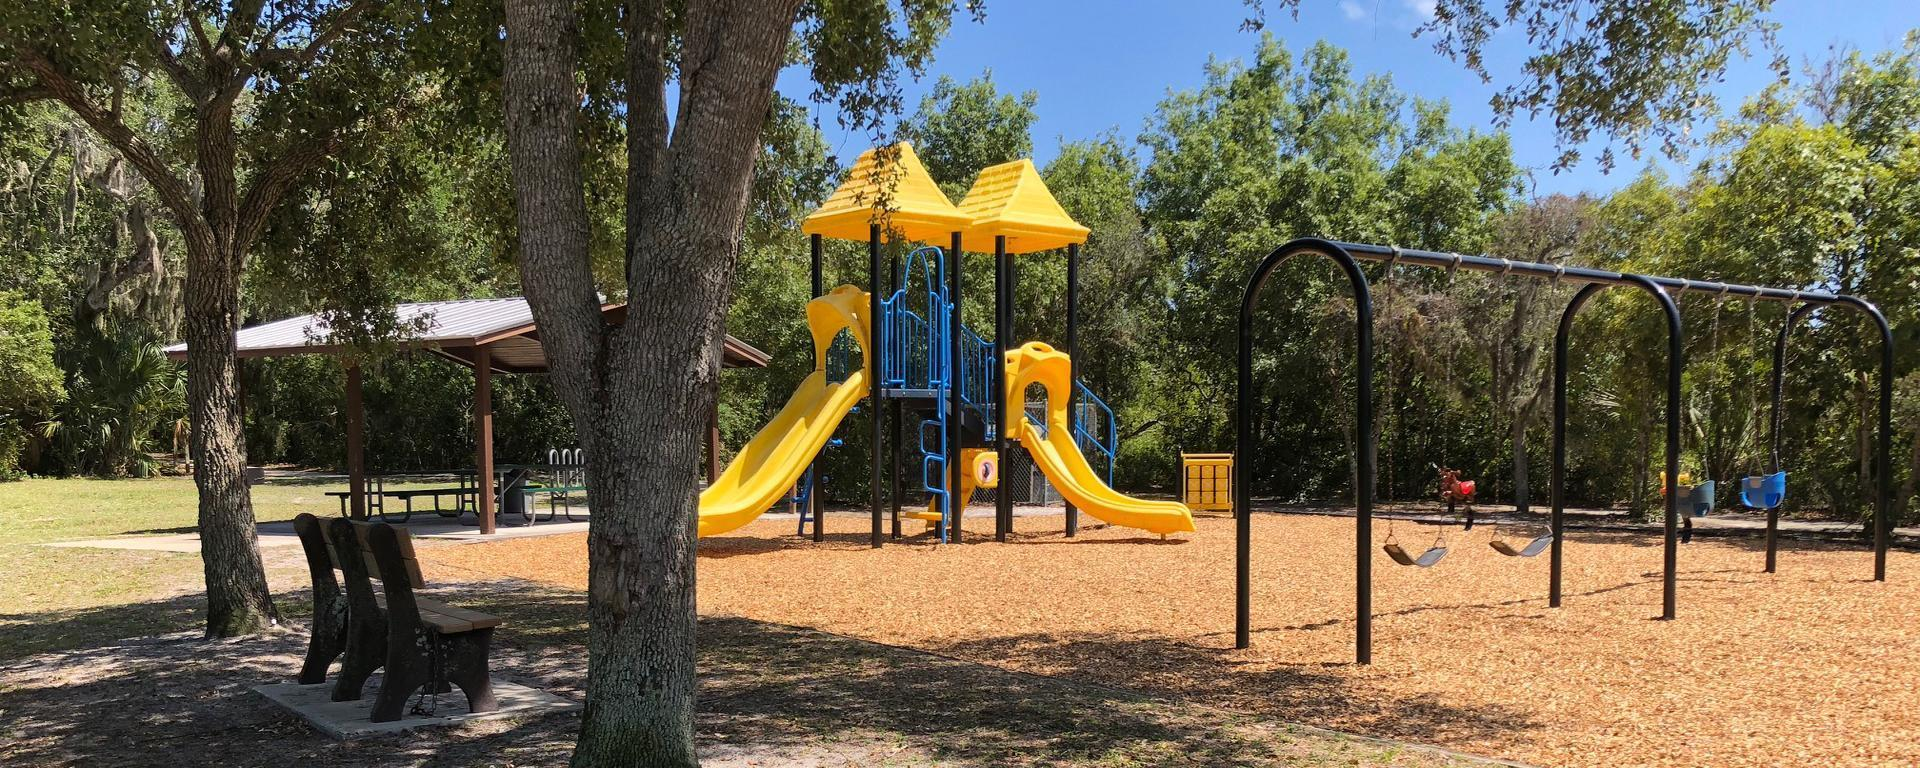 Playground at Maggy's Hammock Park